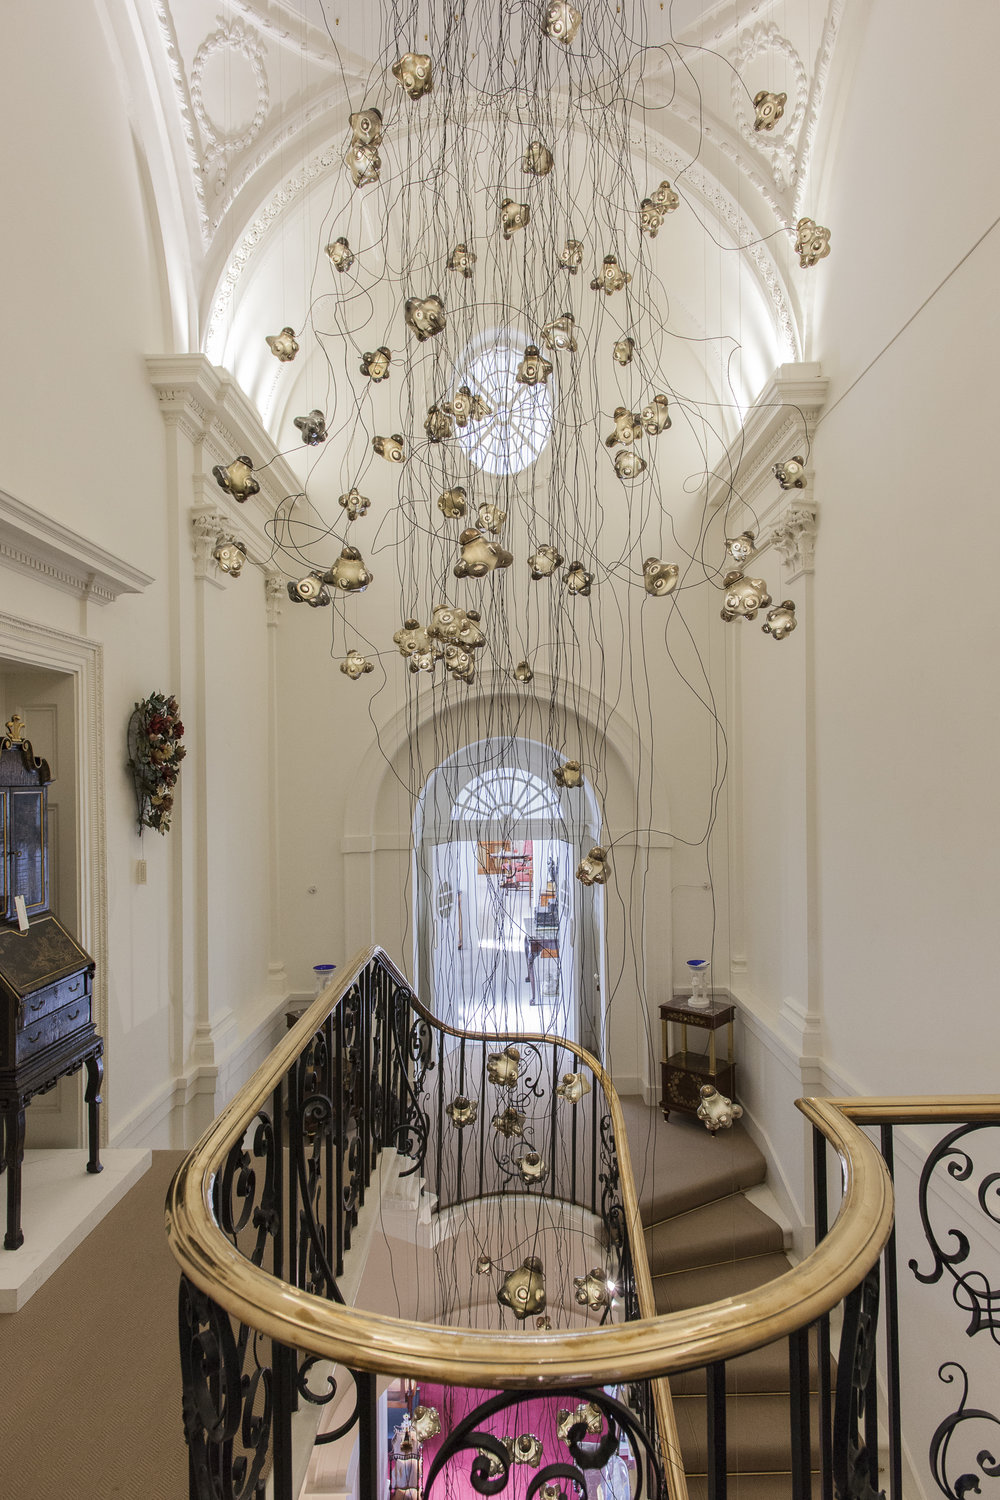 mallon-interiors-bocci-entryway-lights